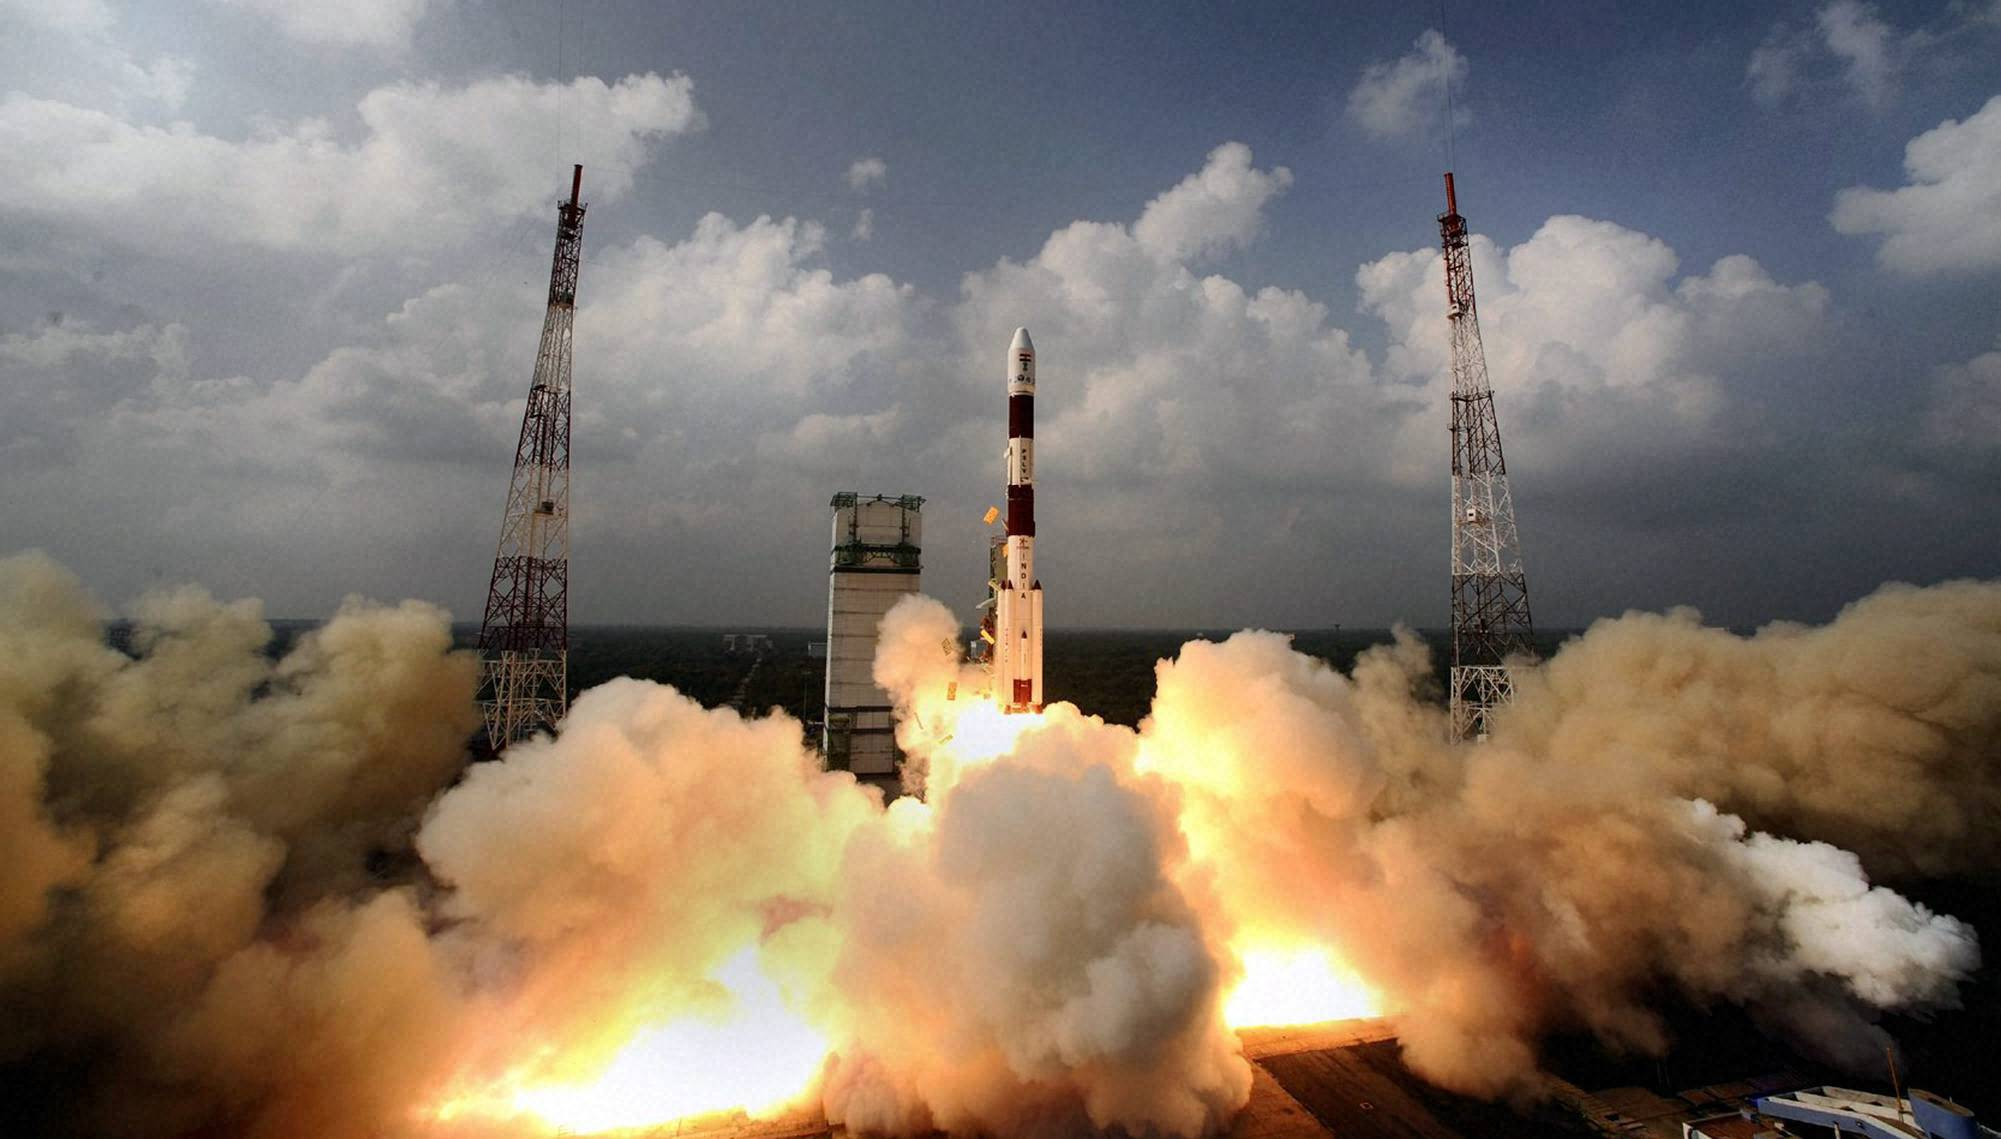 ISRO navigation (route) satellite in orbit